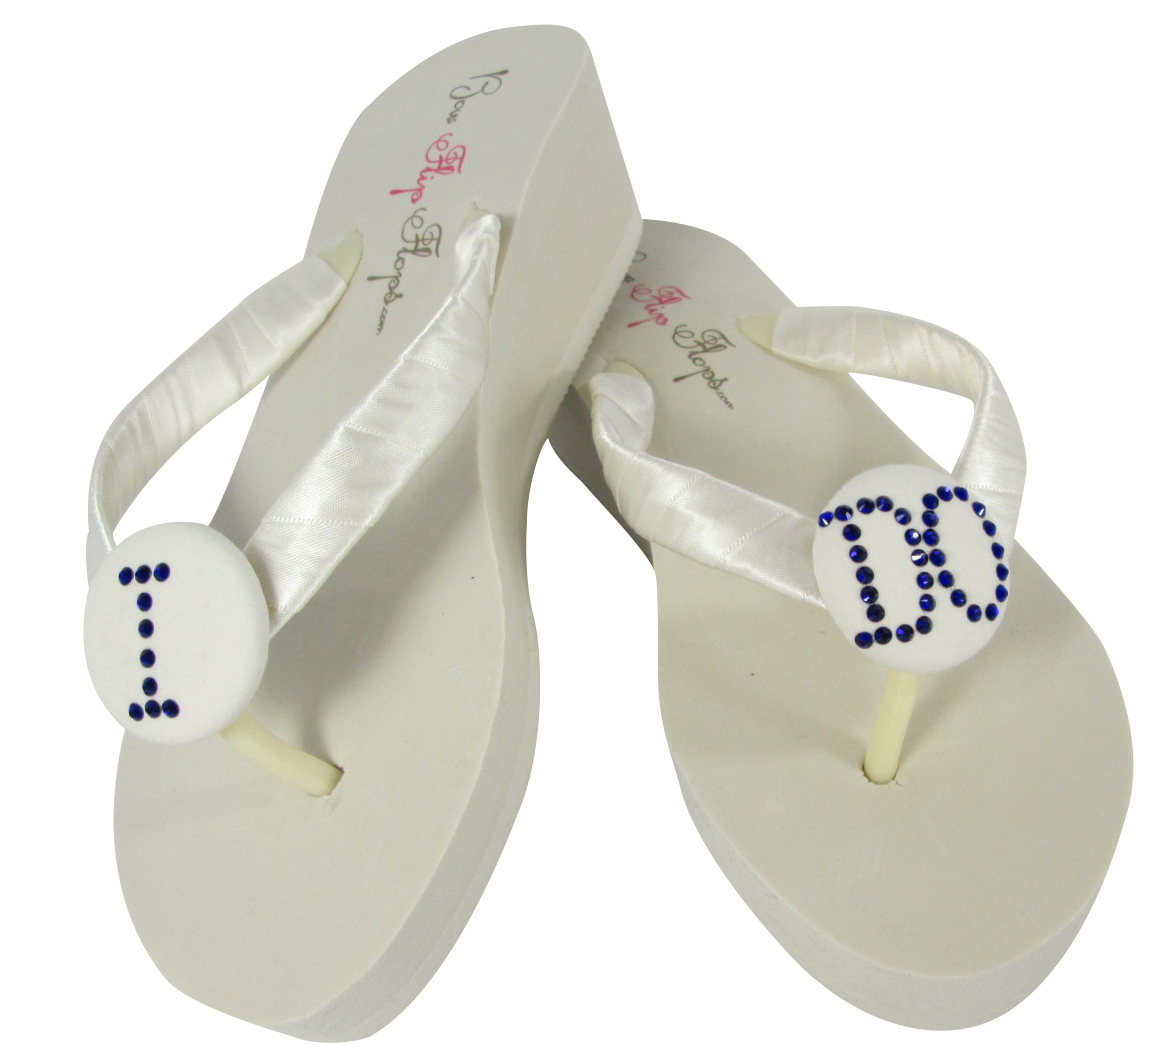 Bridal Flip Flops, sneakers, and a complete line of bridal shoes including dyeable satin, pumps, ballet slippers, sandals, childrens shoes, and handbags. Comfort hand decorated tennis shoes and flip flops for brides, bridesmaids, and flowergirls. bridesmaids, and flowergirls.